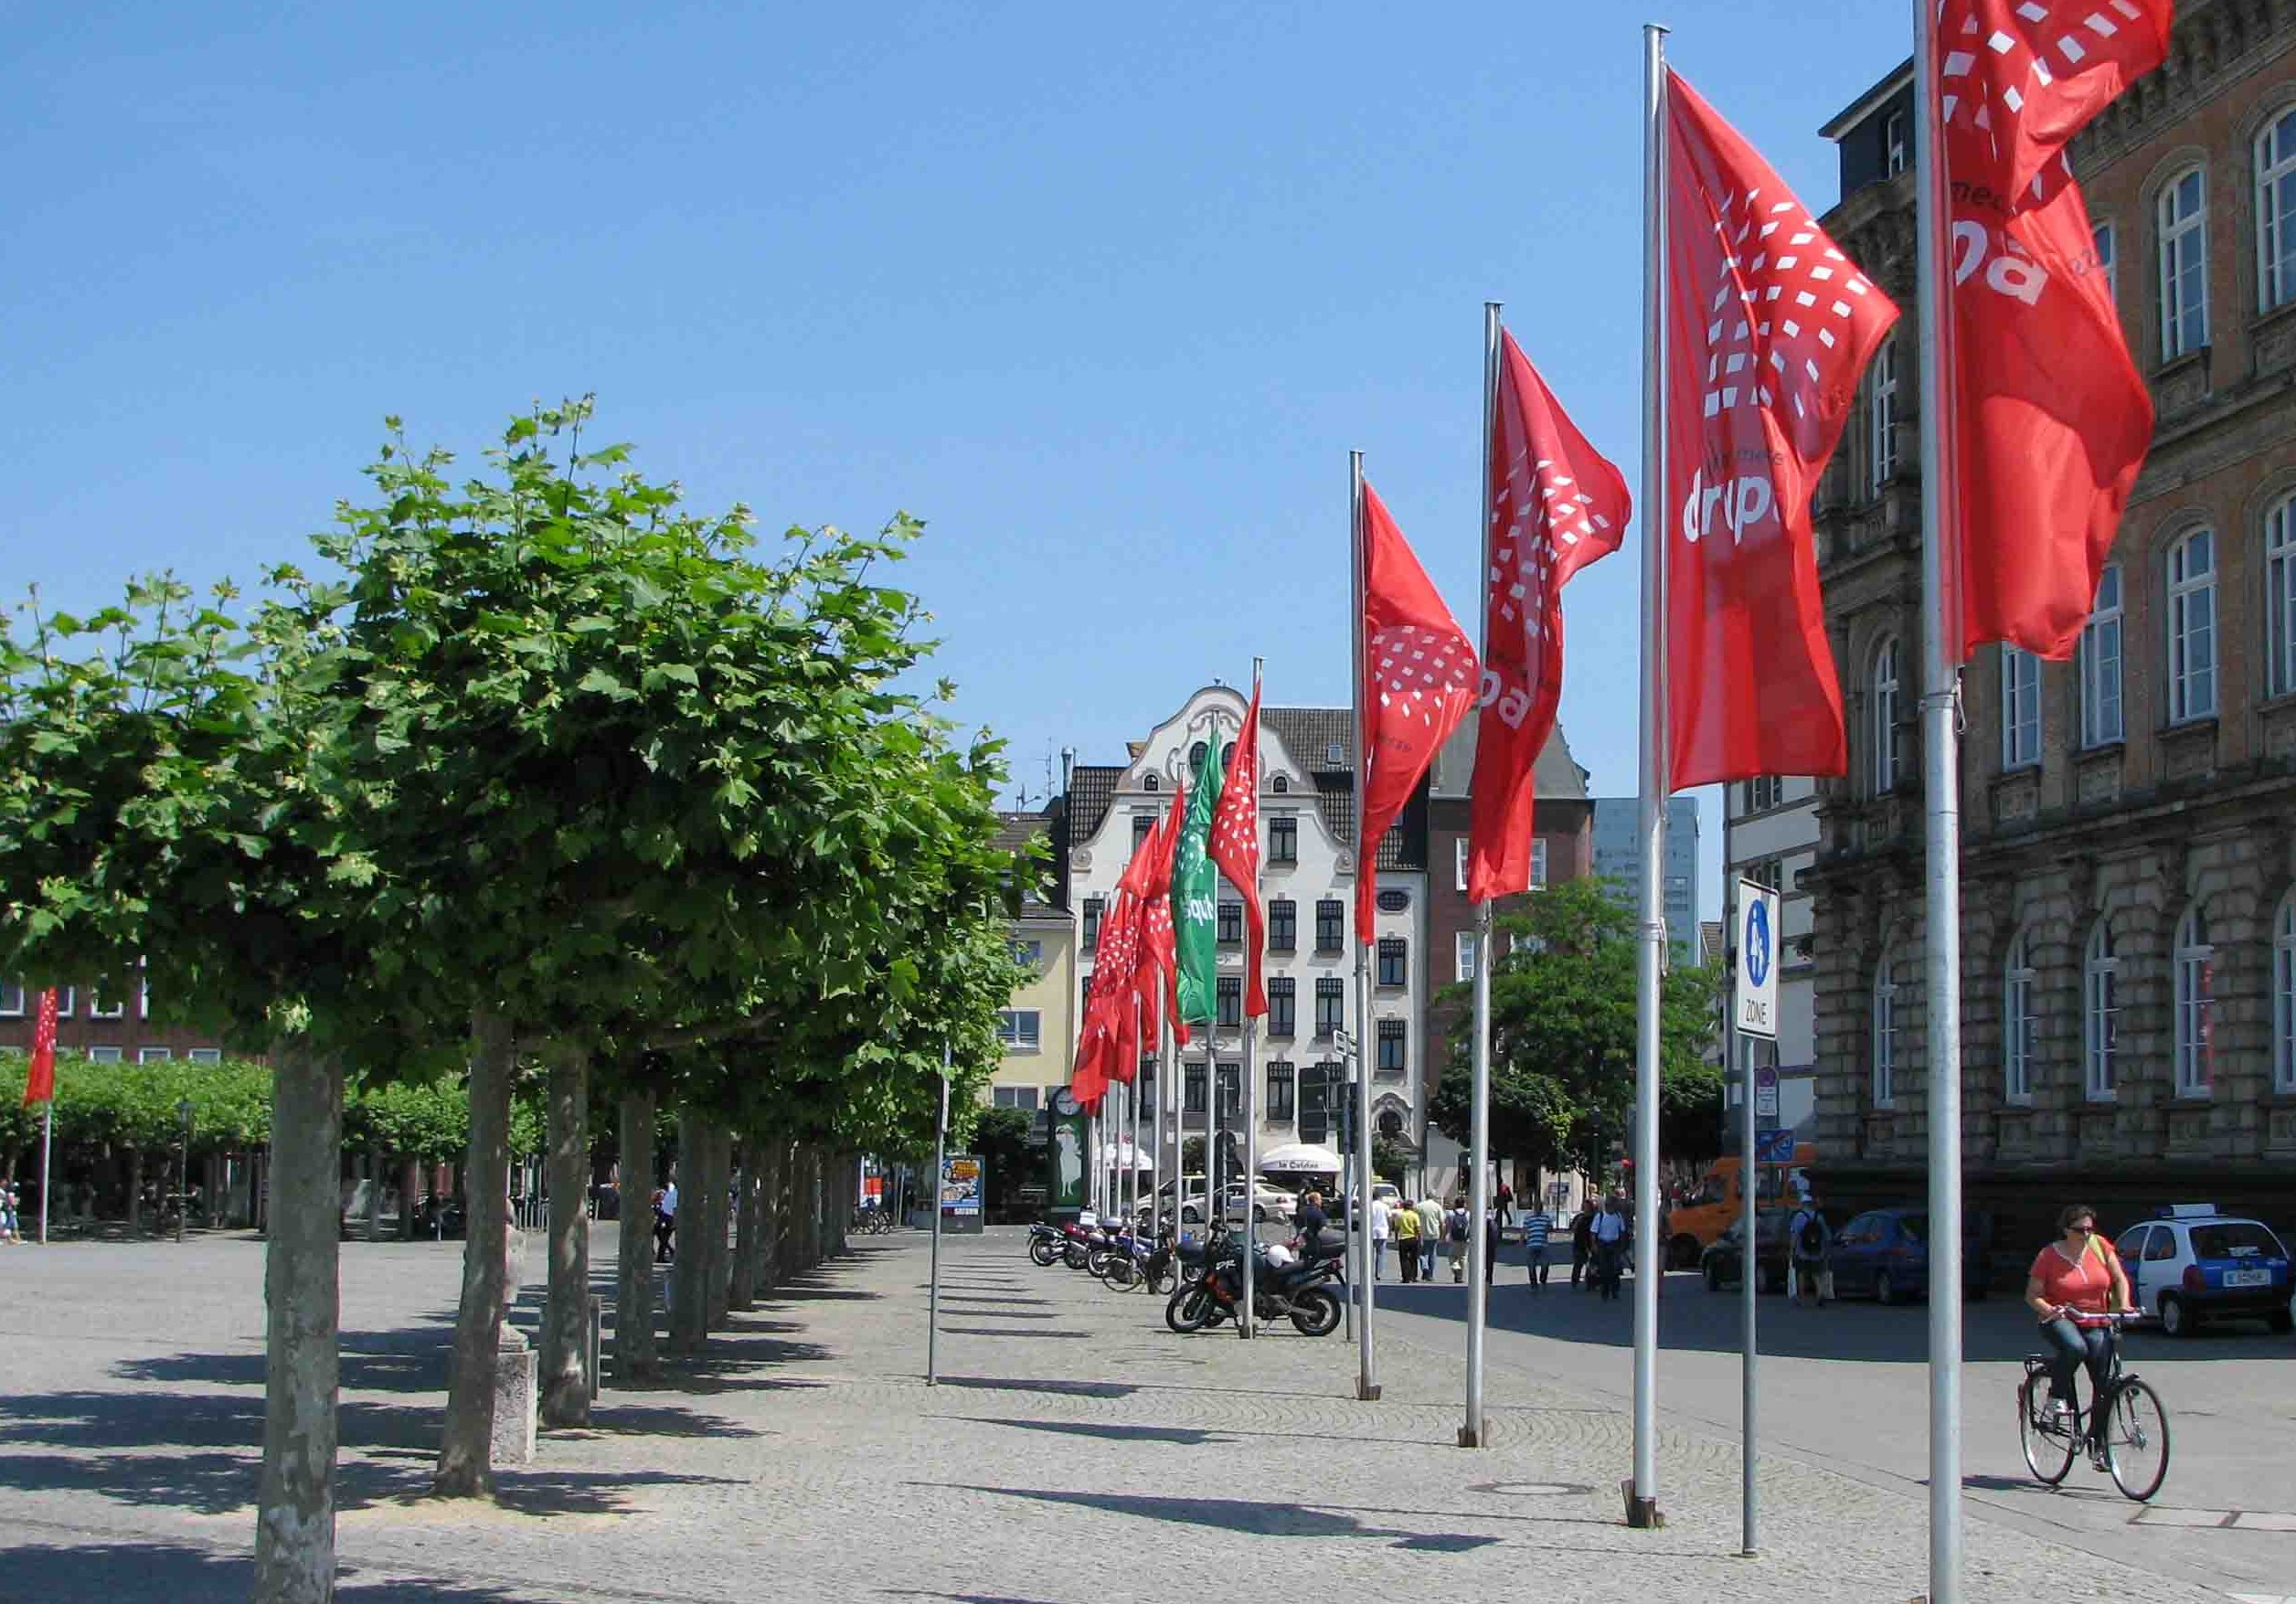 Dusseldorf Altstadt with DRUPA flags